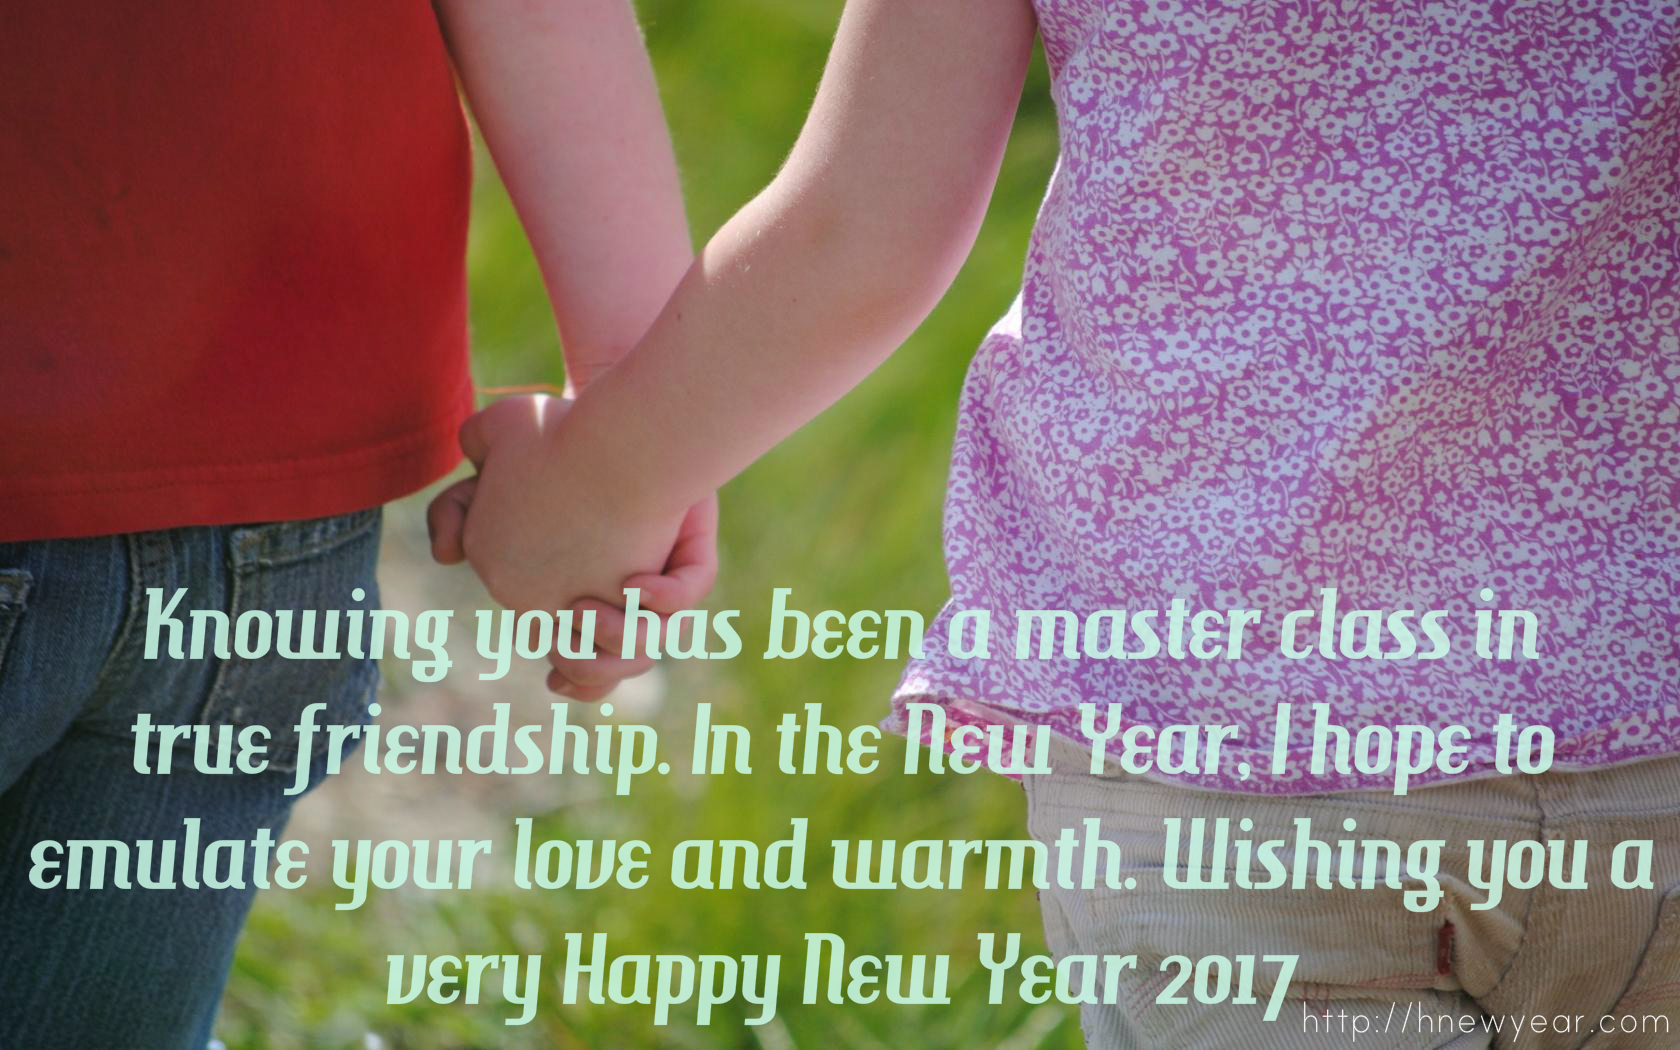 new year wishes for friendship 2019 messages quotes